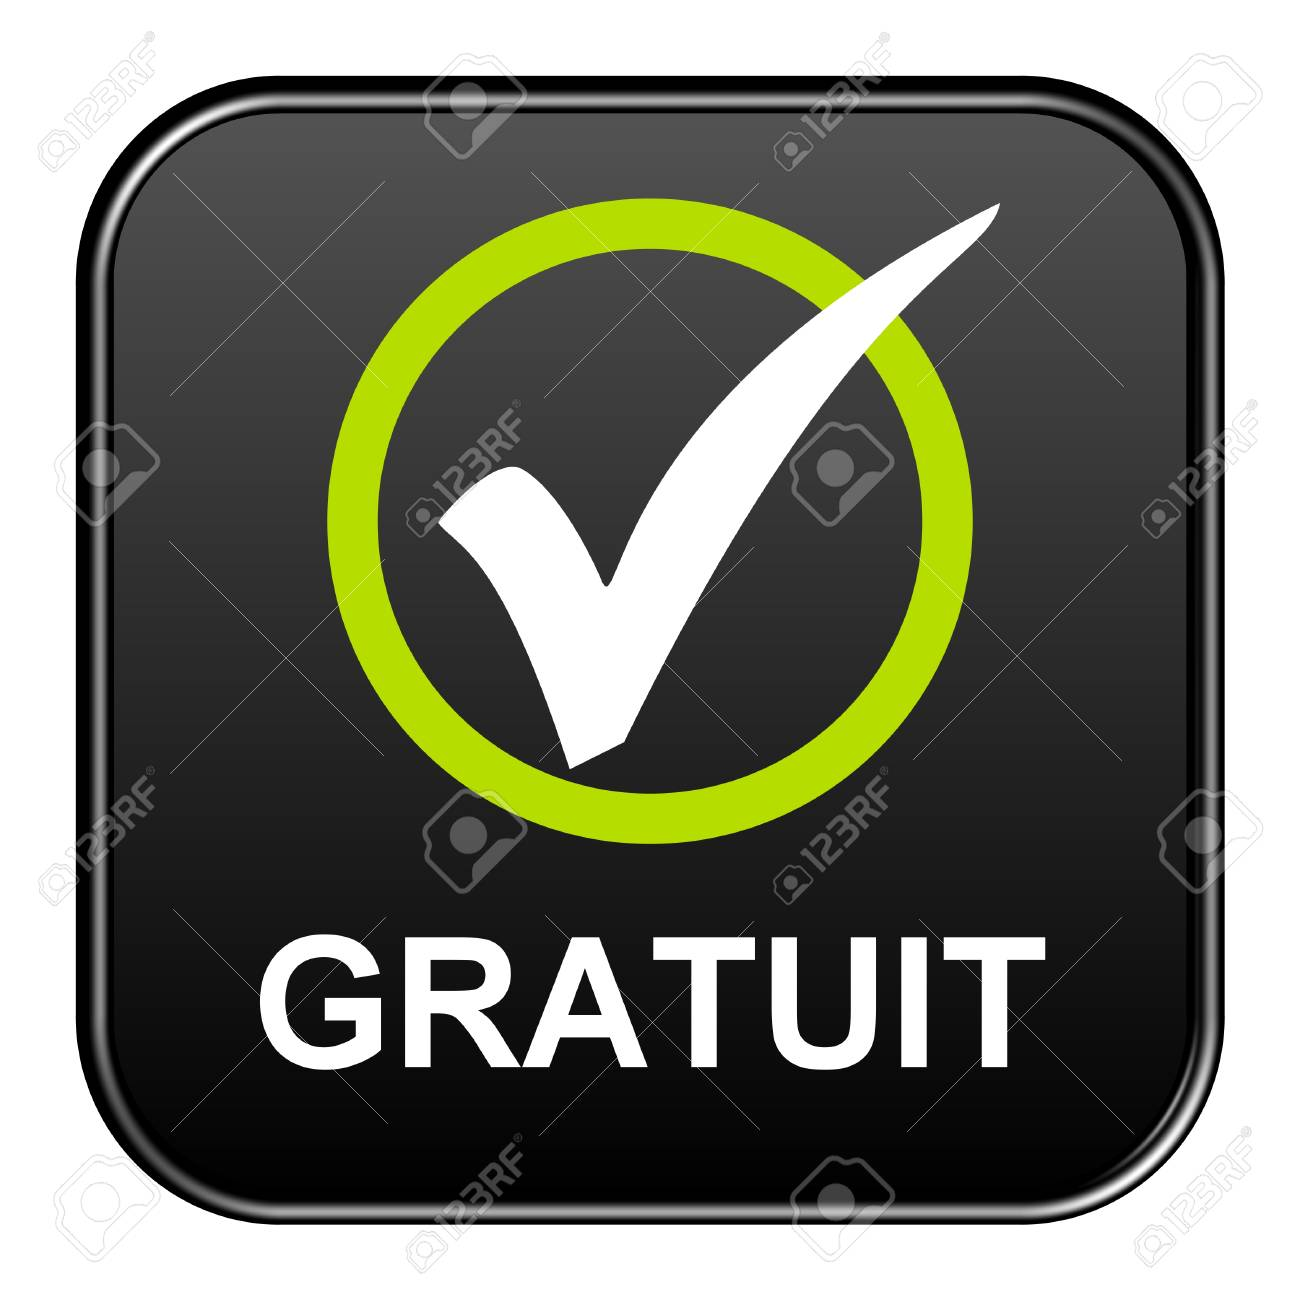 123Rf Gratuit black button: gratuit stock photo, picture and royalty free image